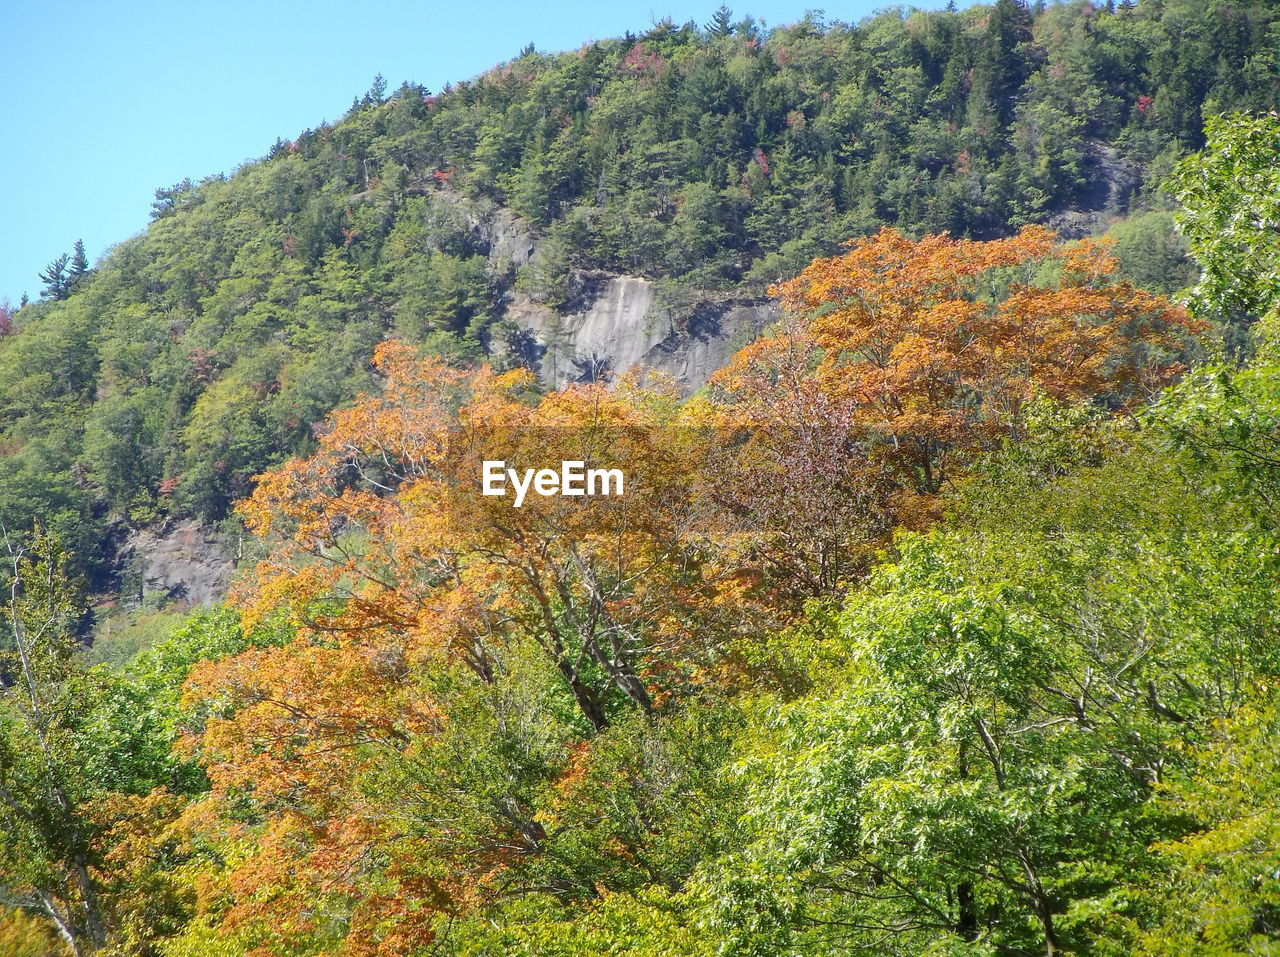 autumn, tree, nature, forest, beauty in nature, vegetation, growth, change, flora, mountain, outdoors, no people, day, sky, range